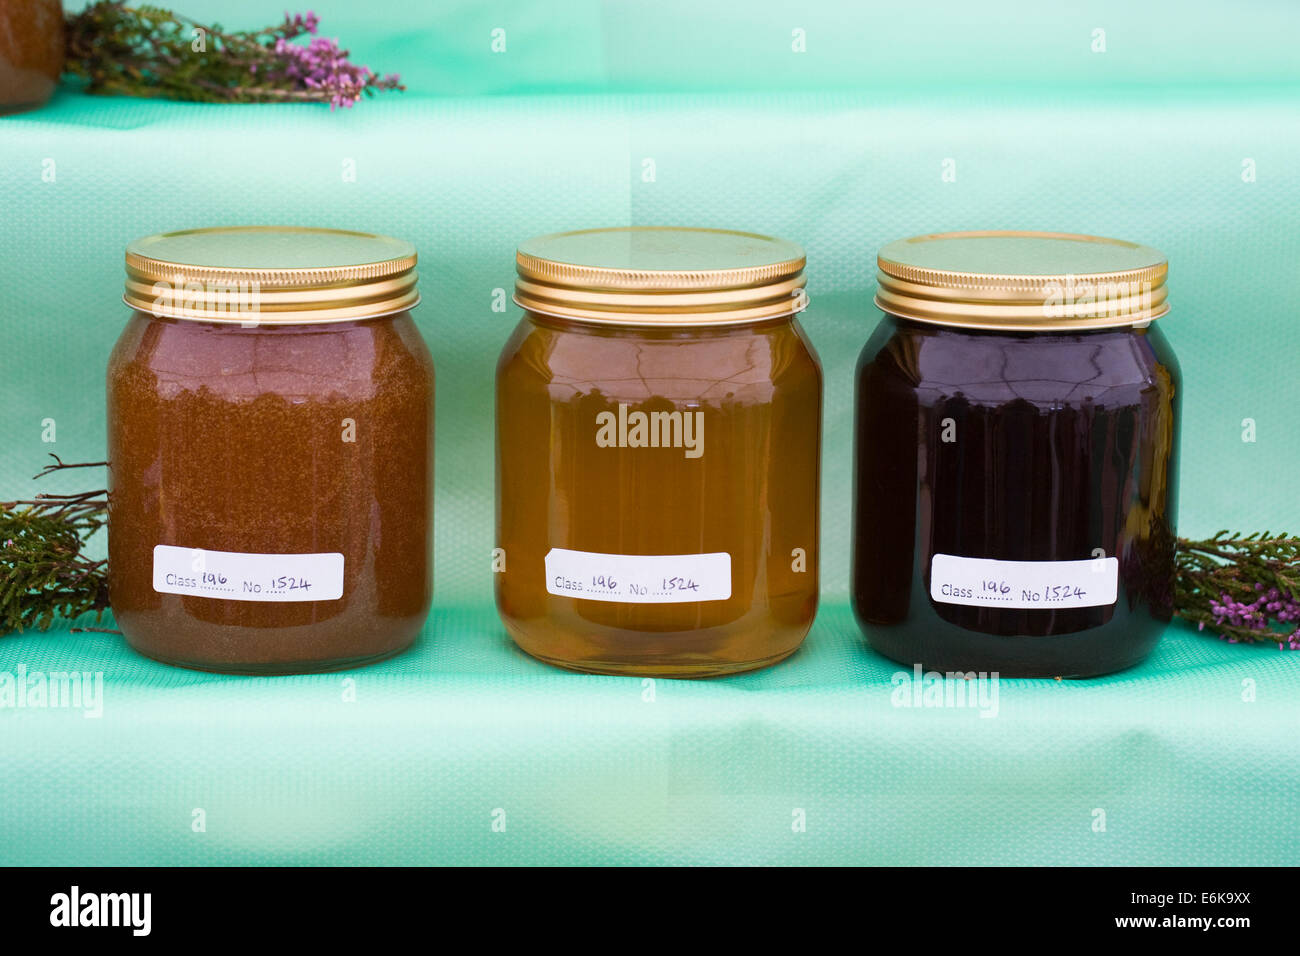 Home produced Honey on display at an agricultural show. - Stock Image